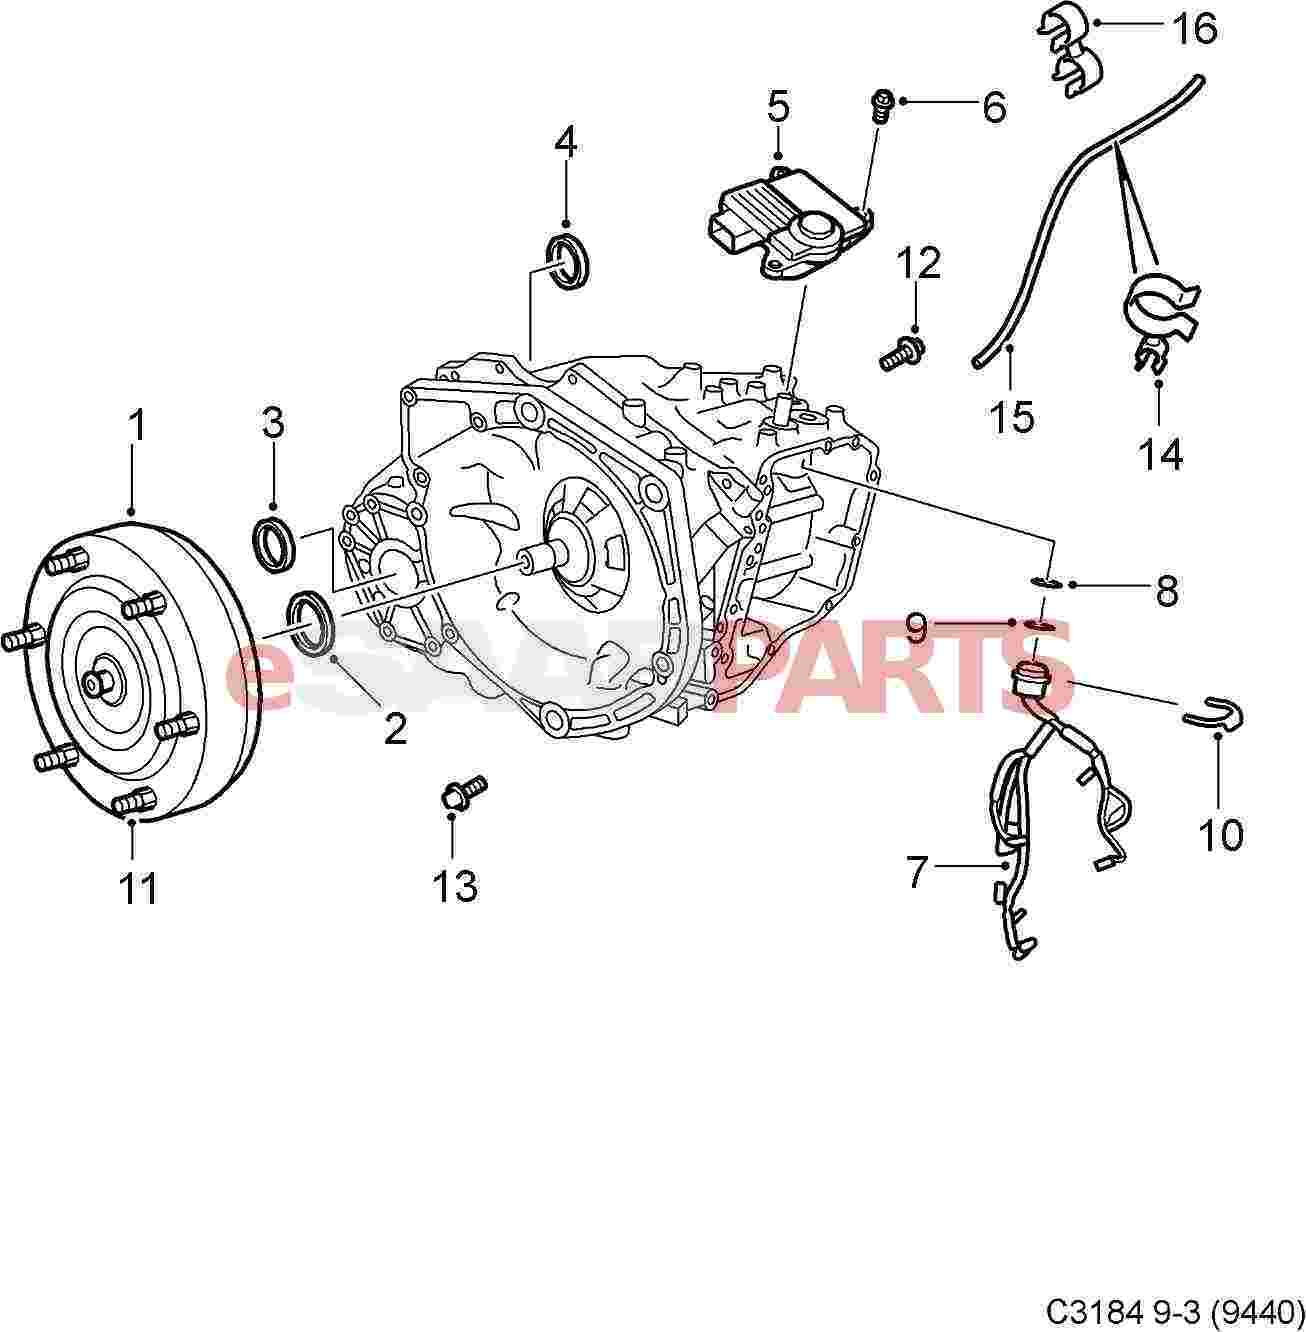 Saab 9 5 Engine Diagram furthermore 93 Land Rover Parts Catalog together with 2000 Audi A4 Fuse Box Diagram furthermore Saab Turbo Diagram together with Saab 900 Transmission Manual Diagram. on saab 9 3 suspension diagram